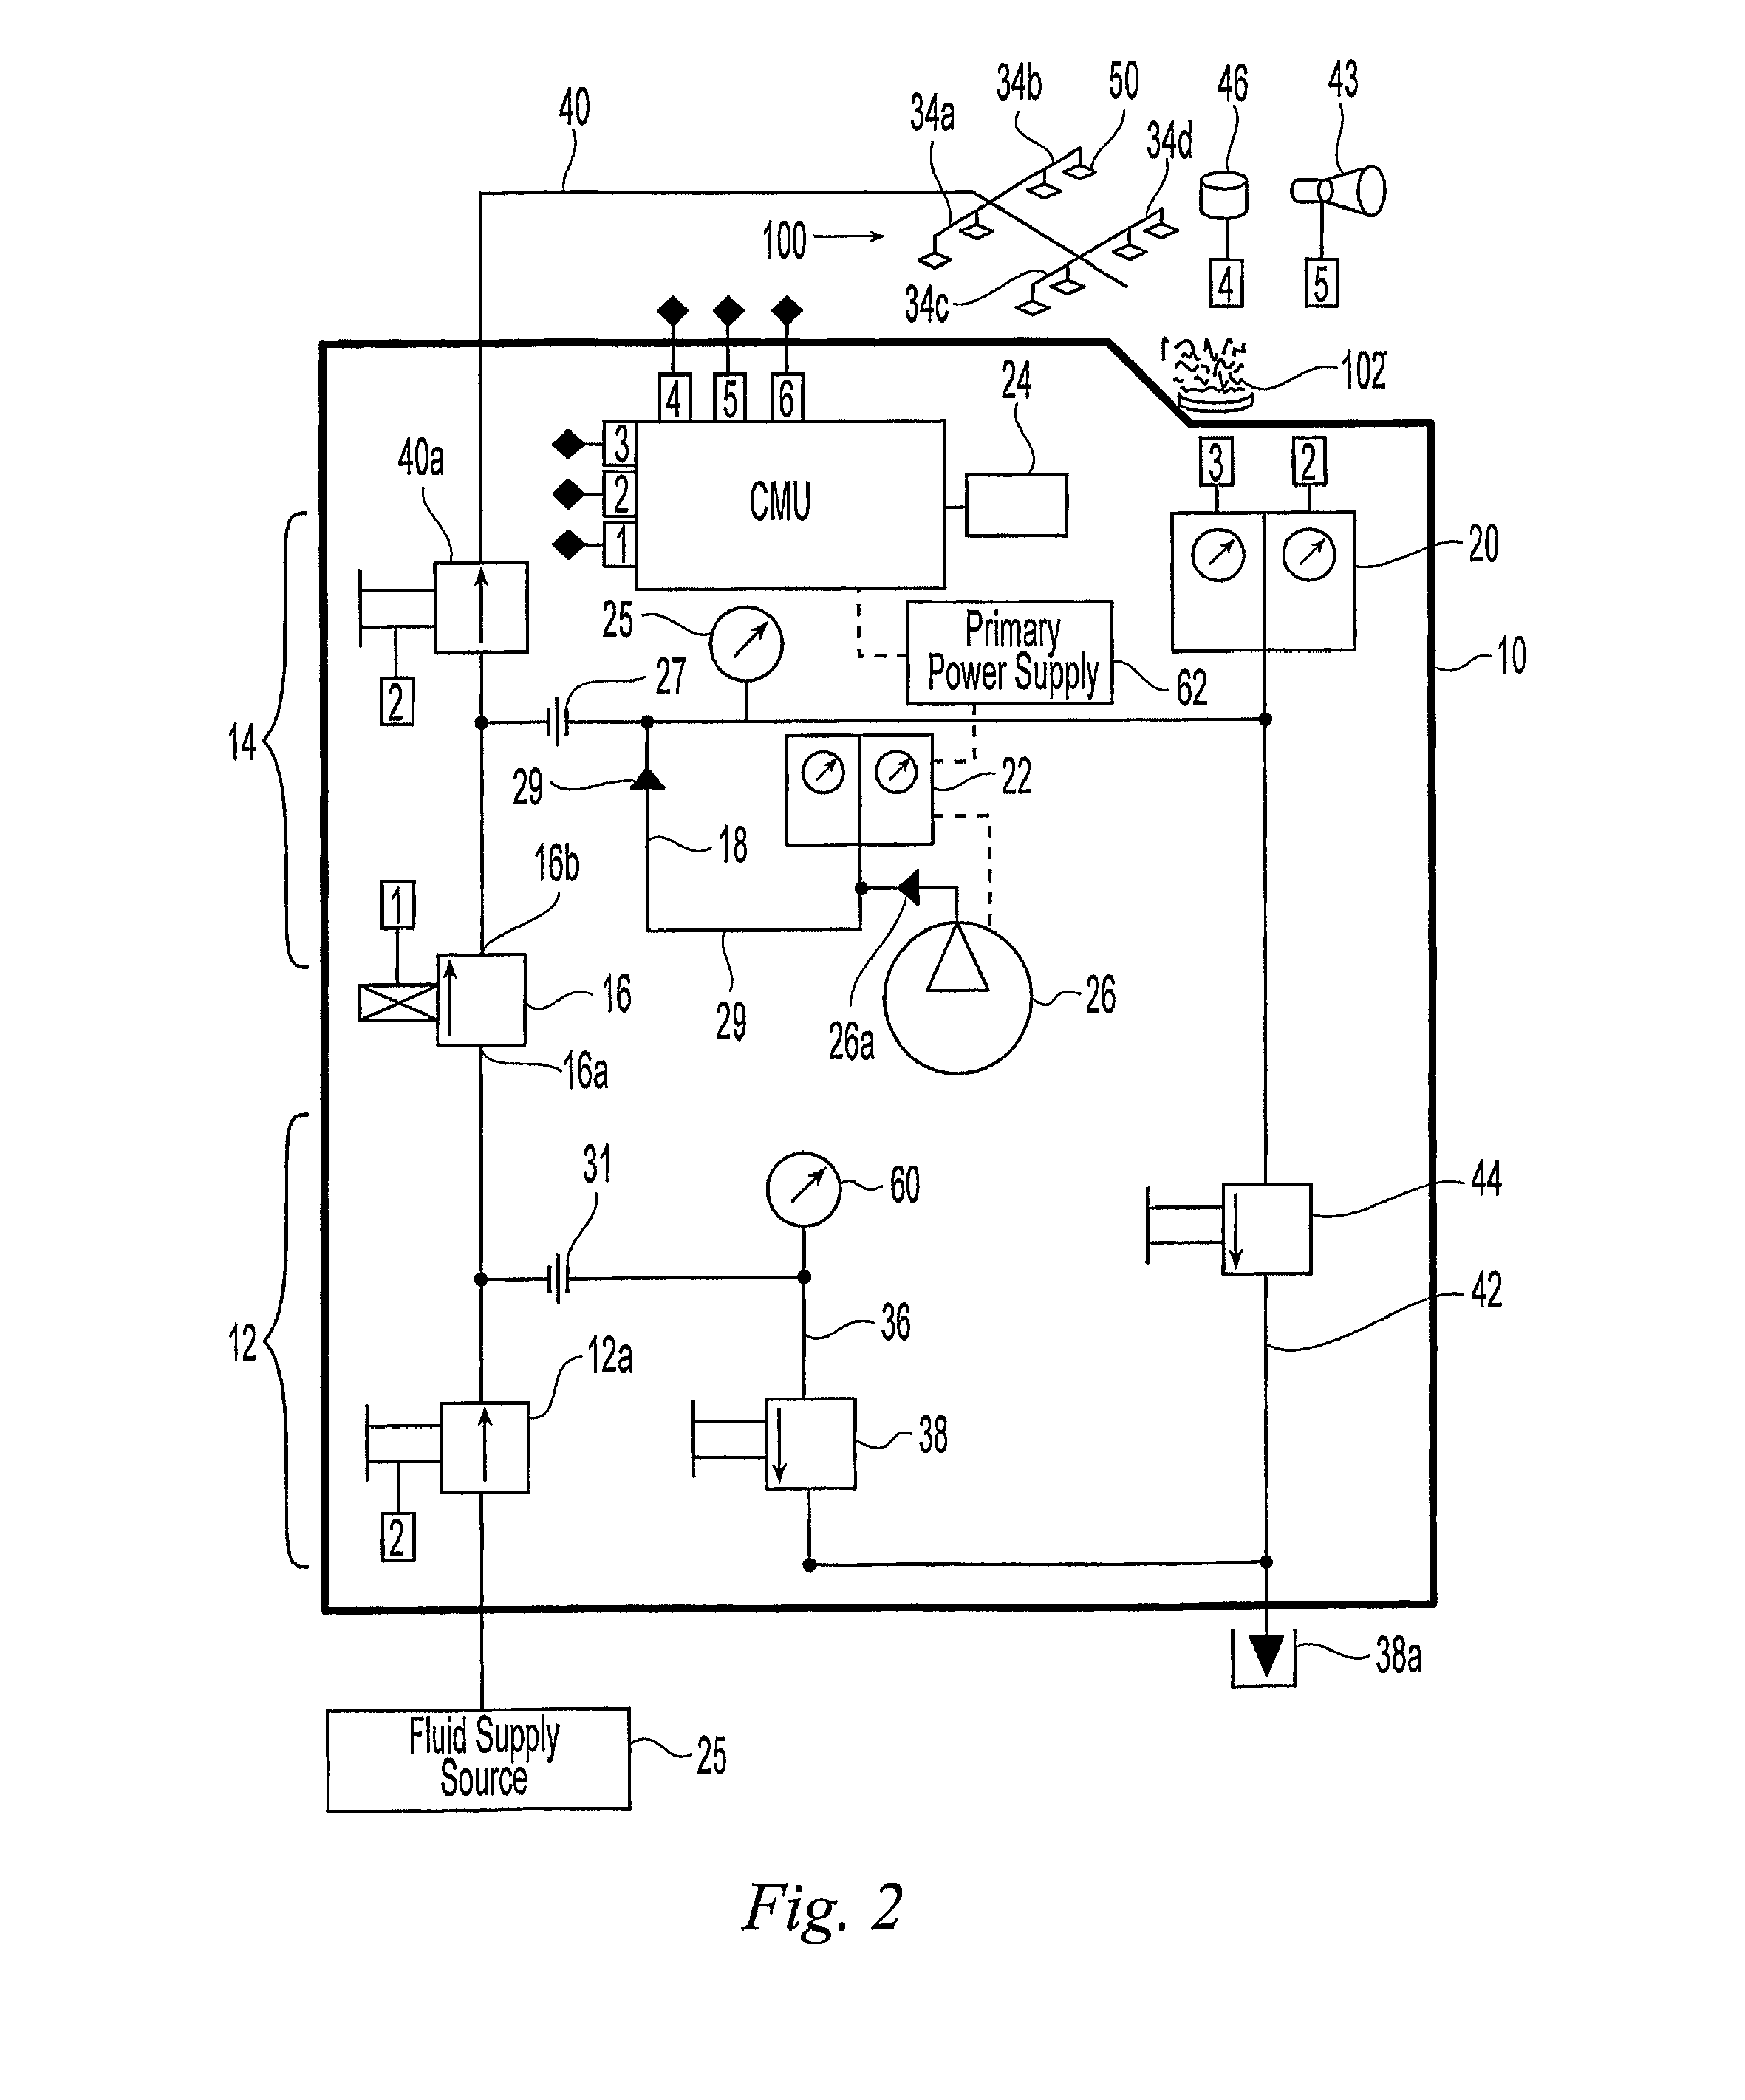 patent us8668023 releasing control unit for a residential fire